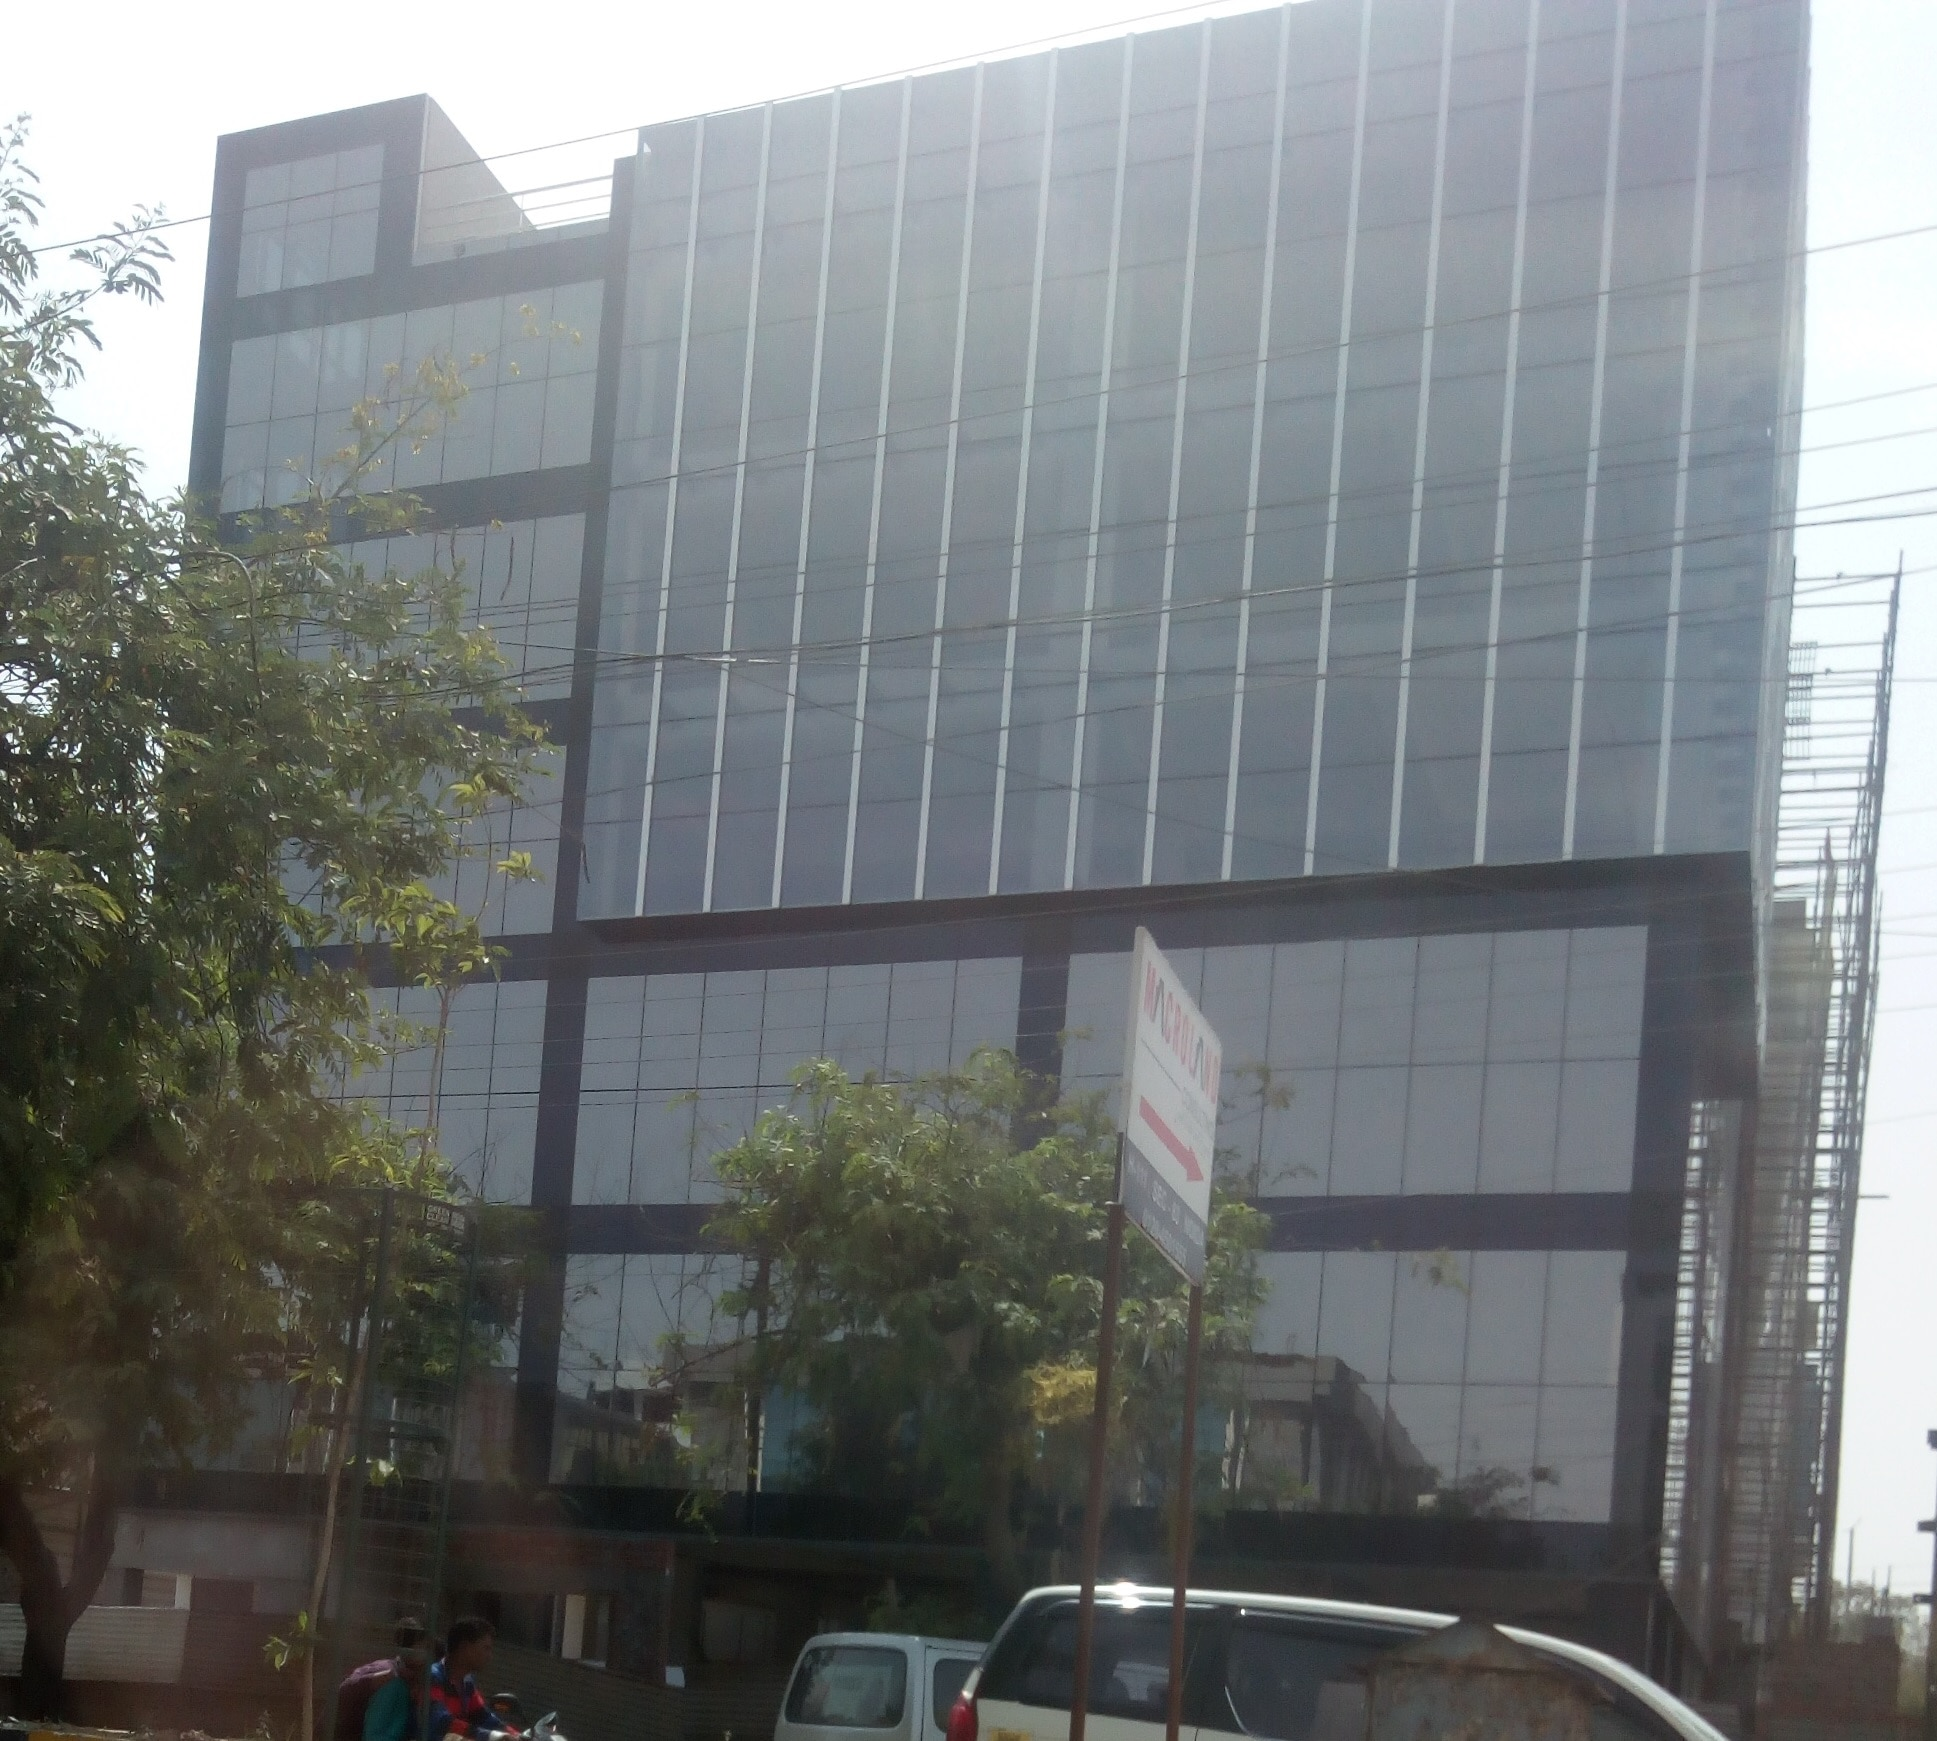 Sector 63, Noida - 32, 000 sq. ft. new A grade Building For Rent / lease in H block  Excellent Connectivity being Near NH-24 Highway and Delhi Metro - Noida Sector 63 Station.  Prime location with nearby Business / Office Hub and Executive Hotels  Corner Building with Two Side Open facing road 30 mtr. X 30 mtr.  Beautiful Construction with Excellent Glass Facade. Basement + stilt + ground + I + II + III